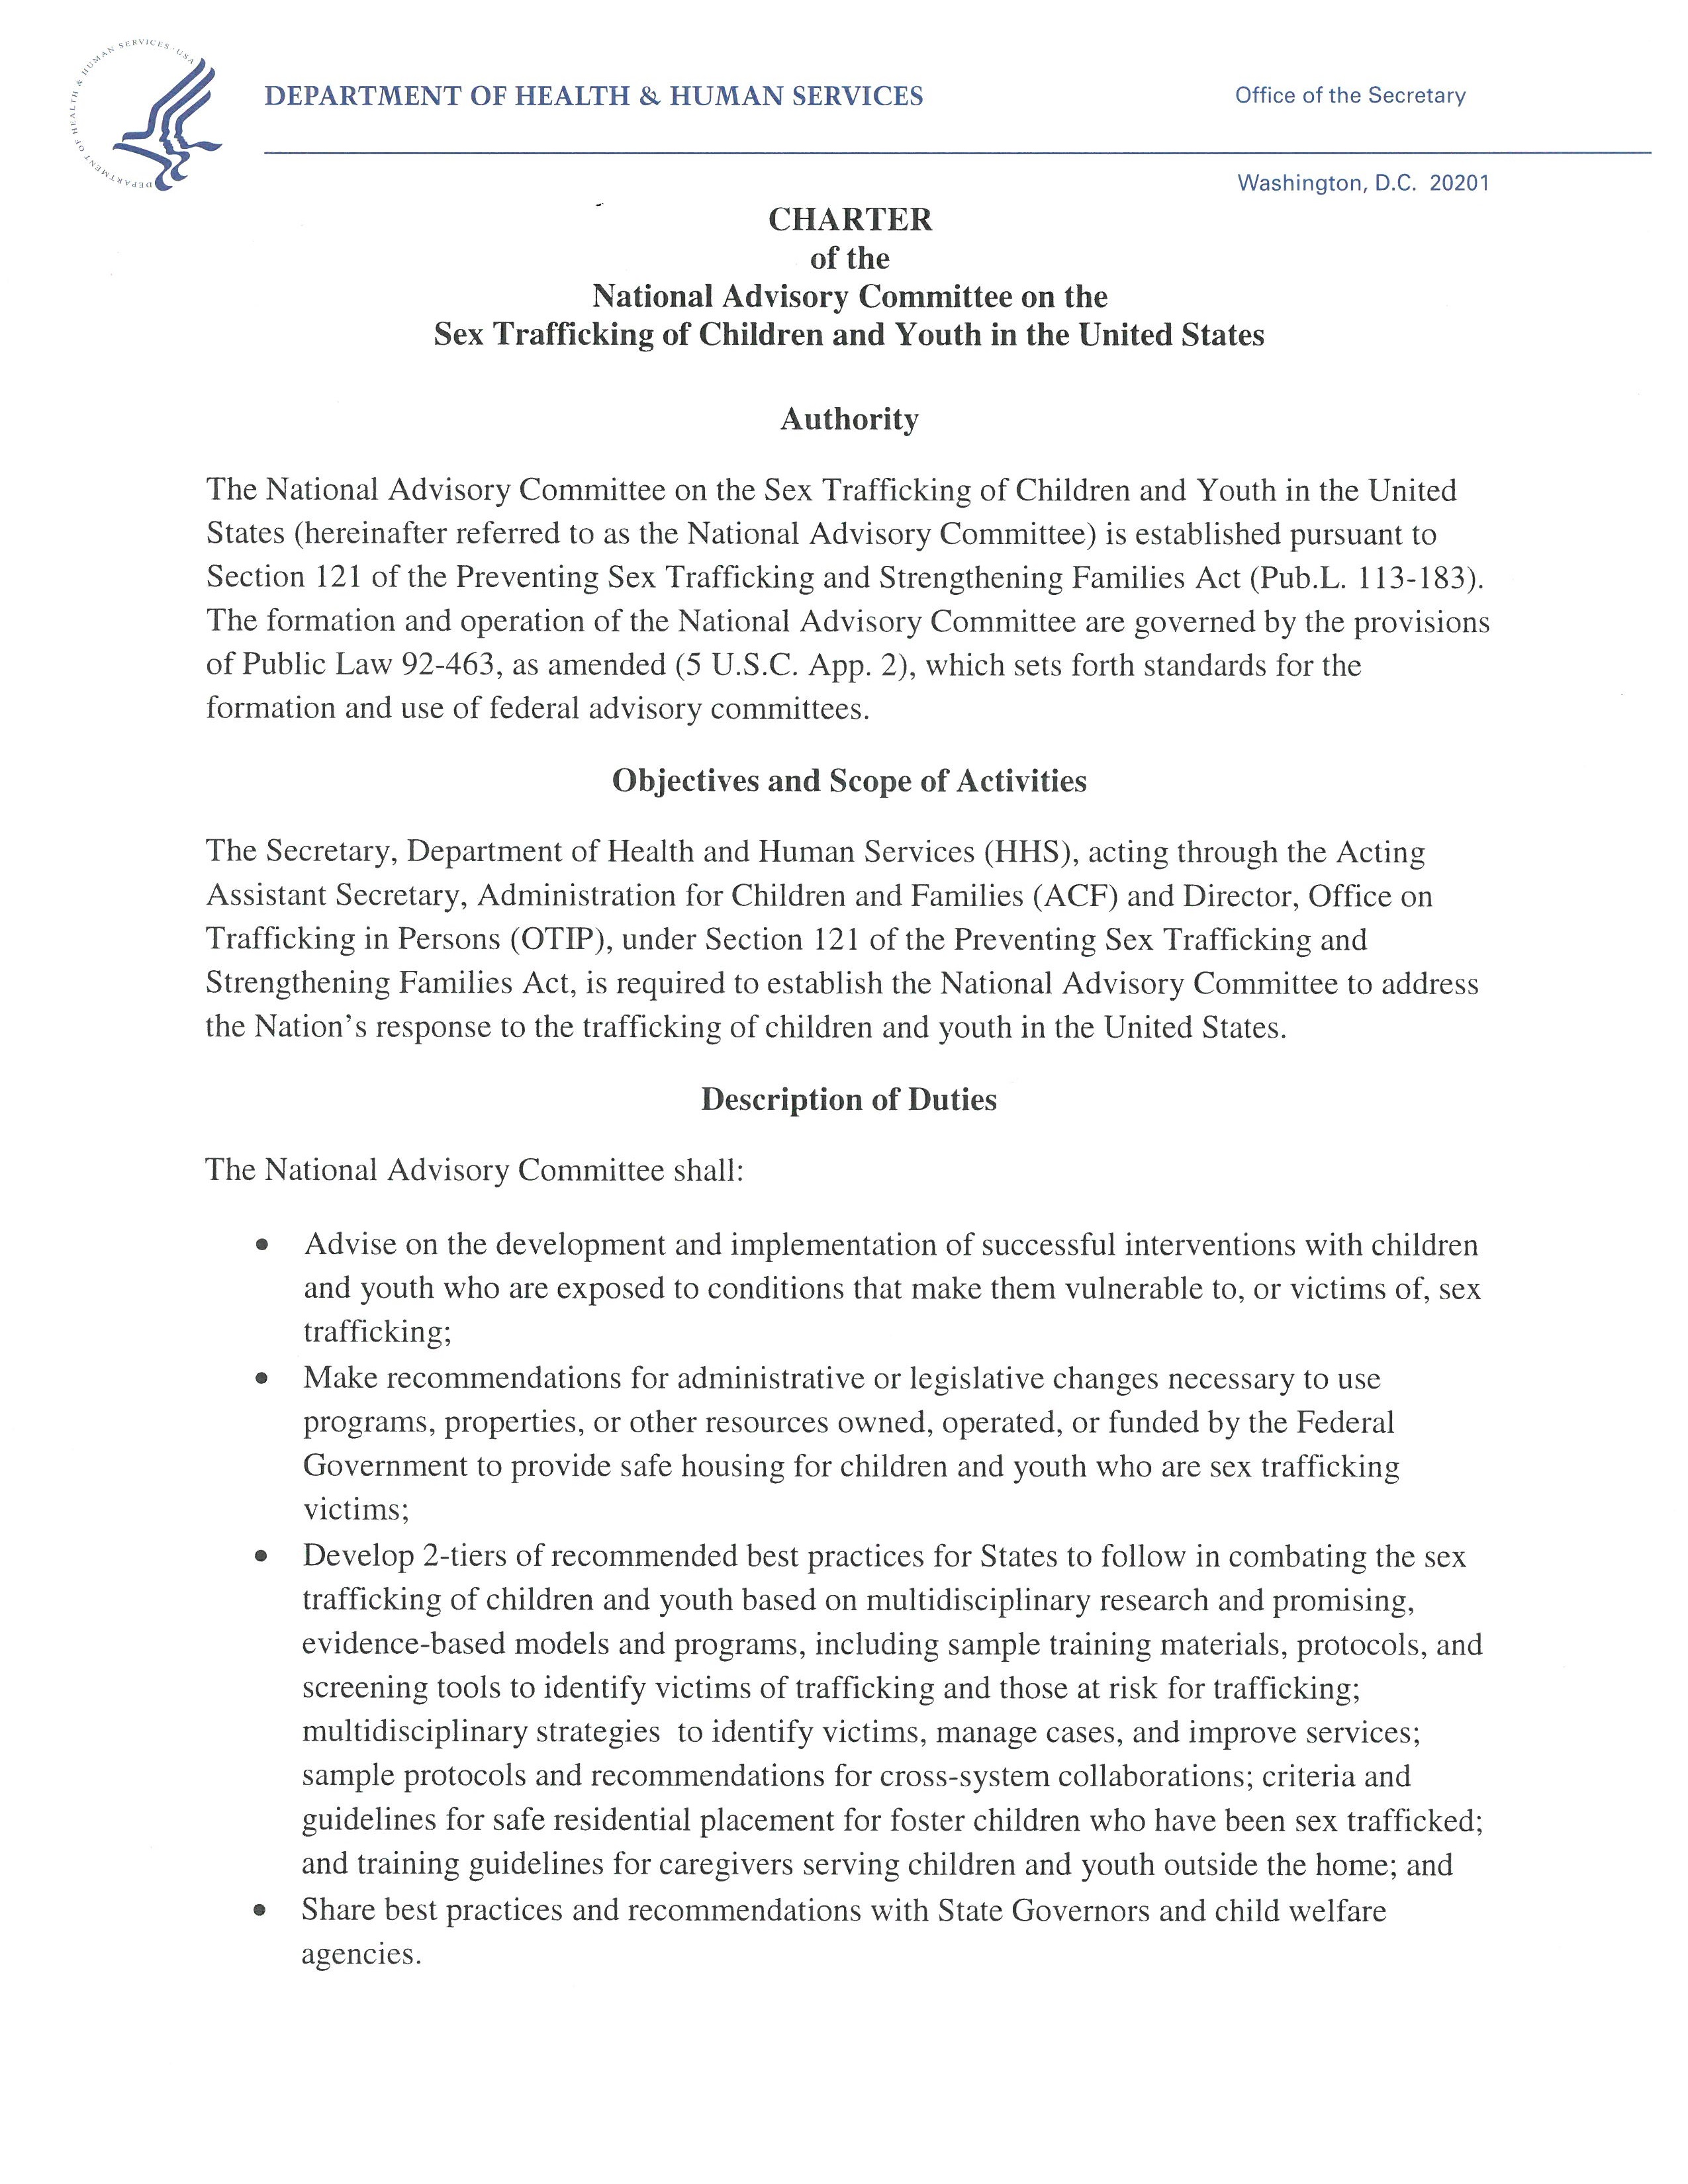 Charter for the National Advisory Committee